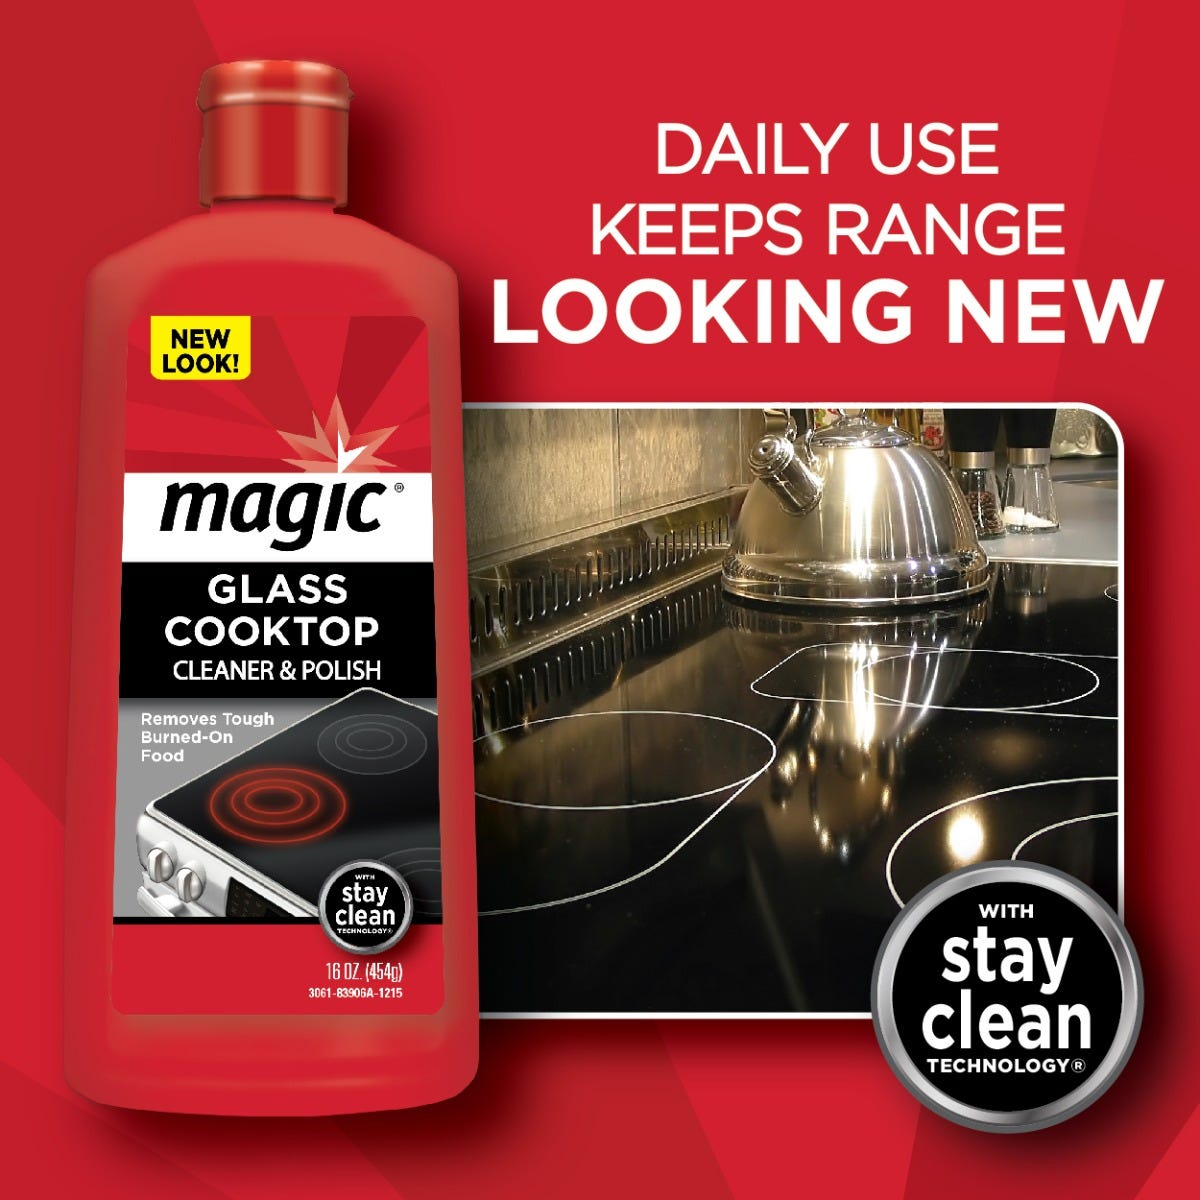 Magic Glass Cooktop Cleaner & Polish